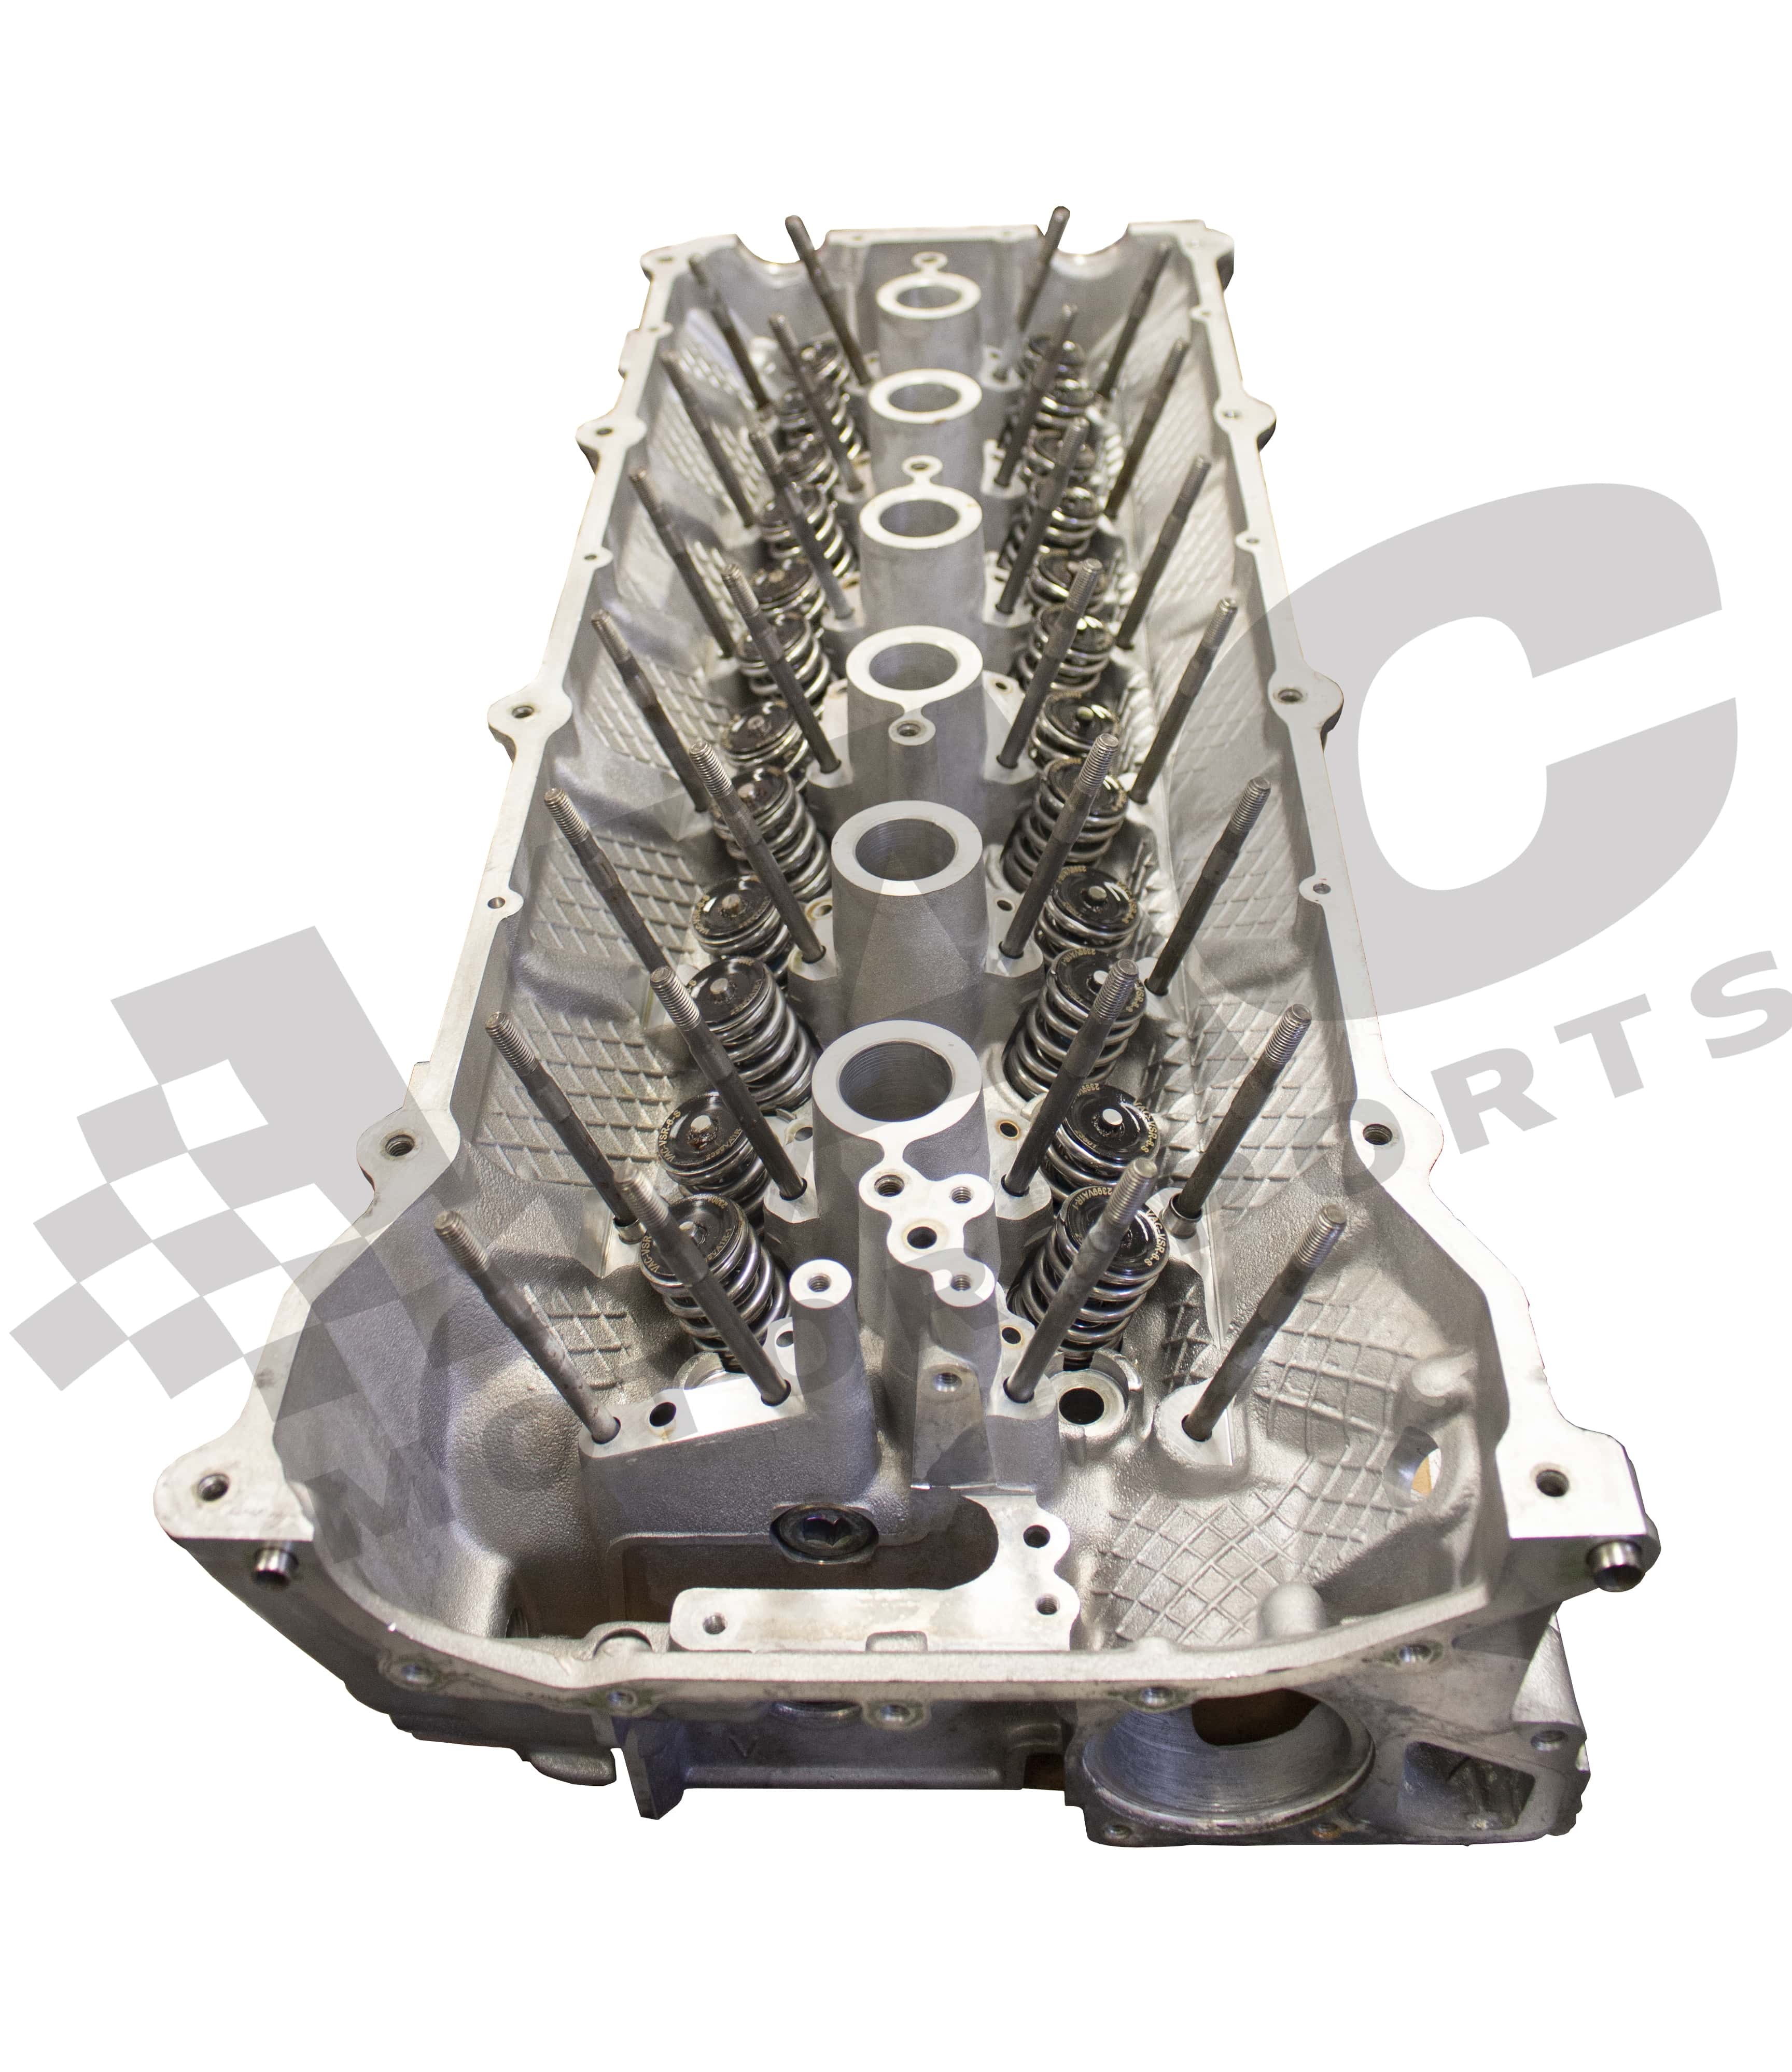 VAC - M50 Non VANOS Stage 1 Performance Cylinder Head MAIN